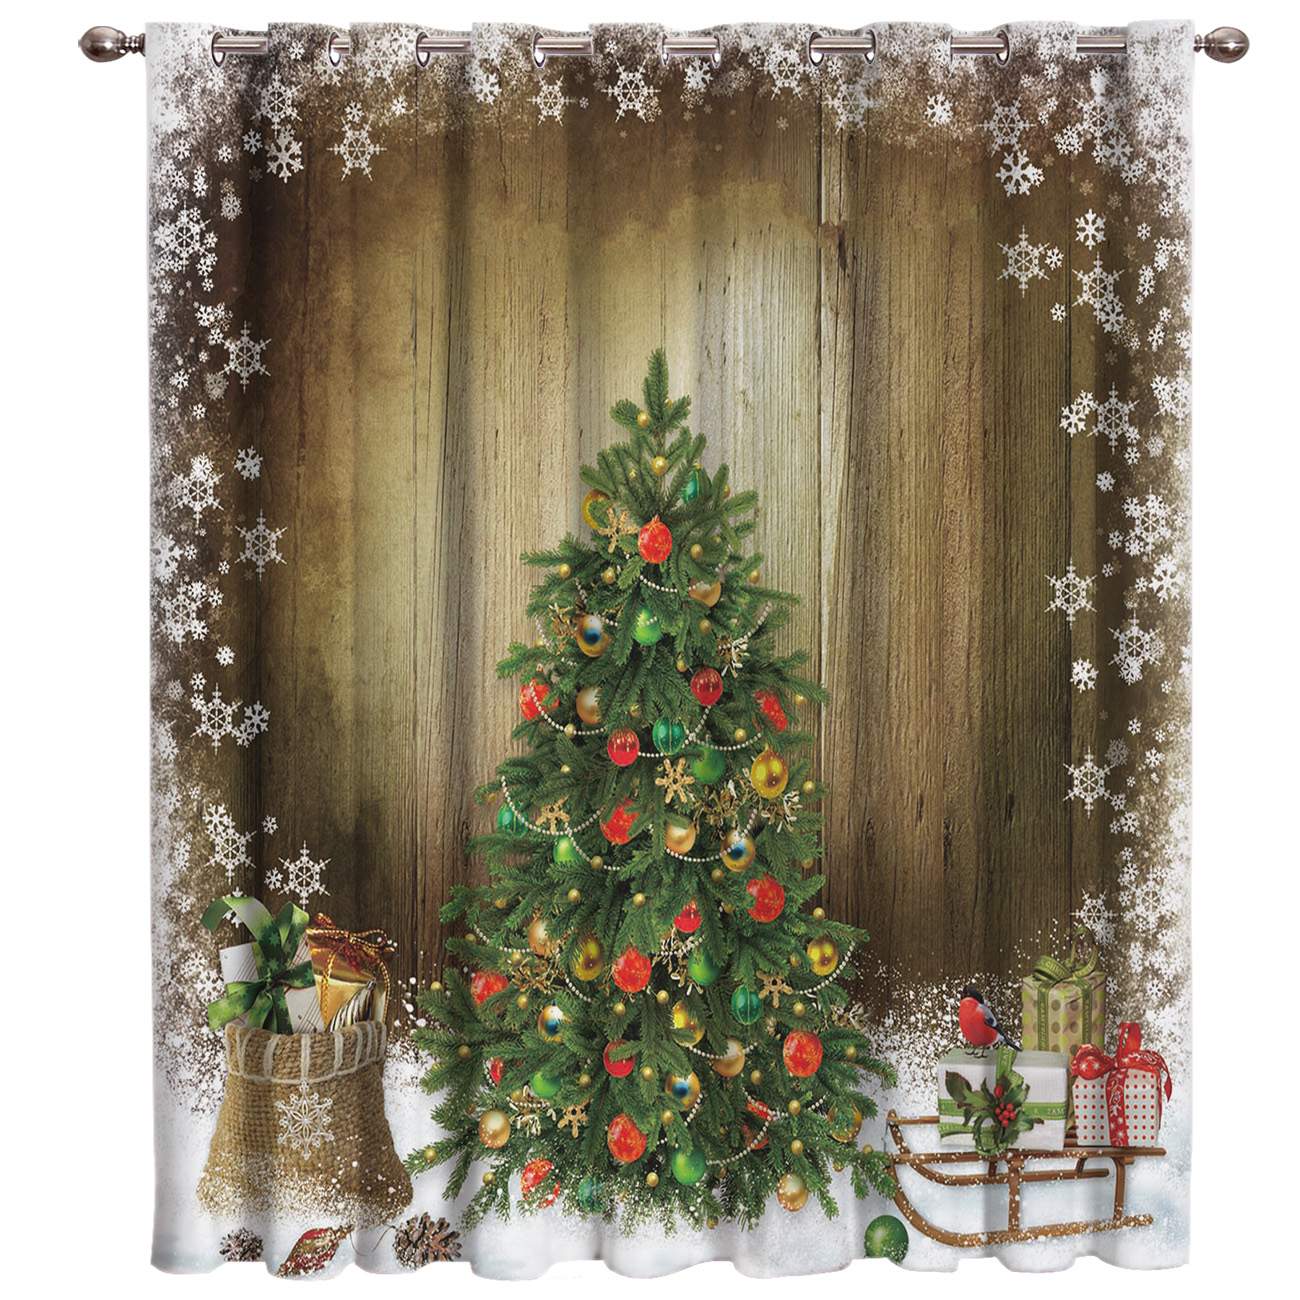 Merry Christmas Snow Flower Window Treatments Curtains Valance Bedroom Curtains Outdoor Bedroom Kids Window Curtain Panels